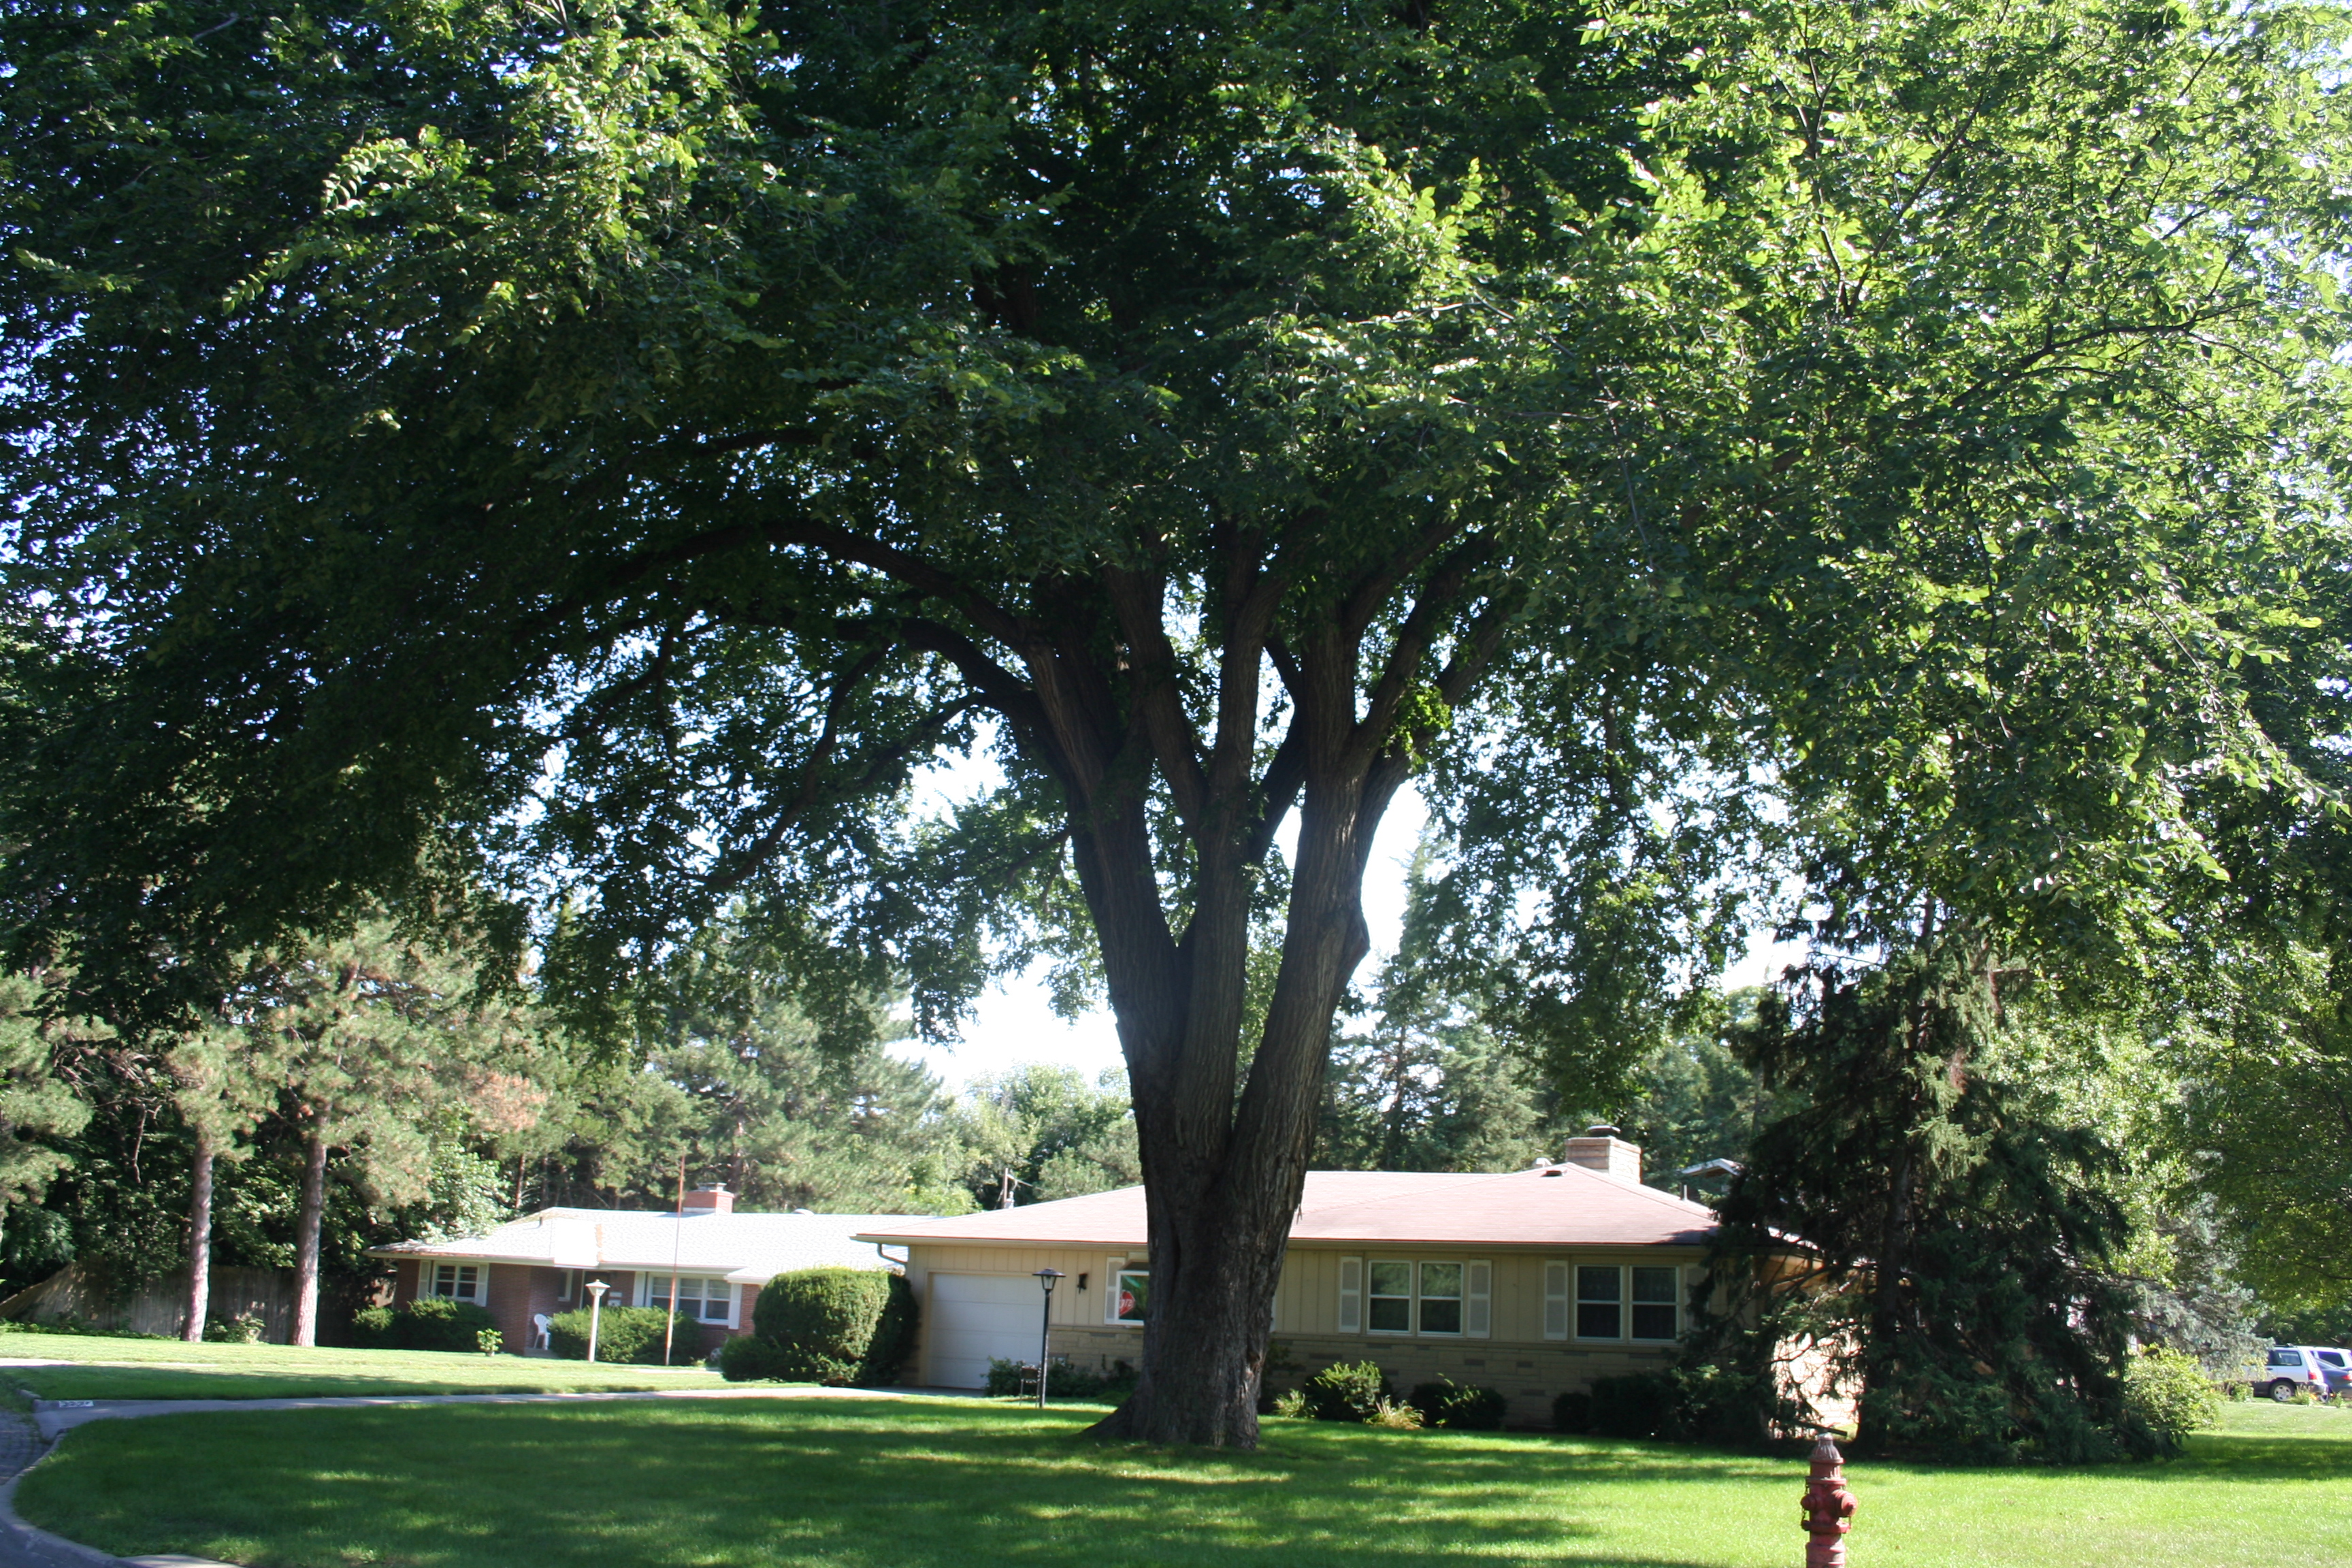 American elm tree shades house.